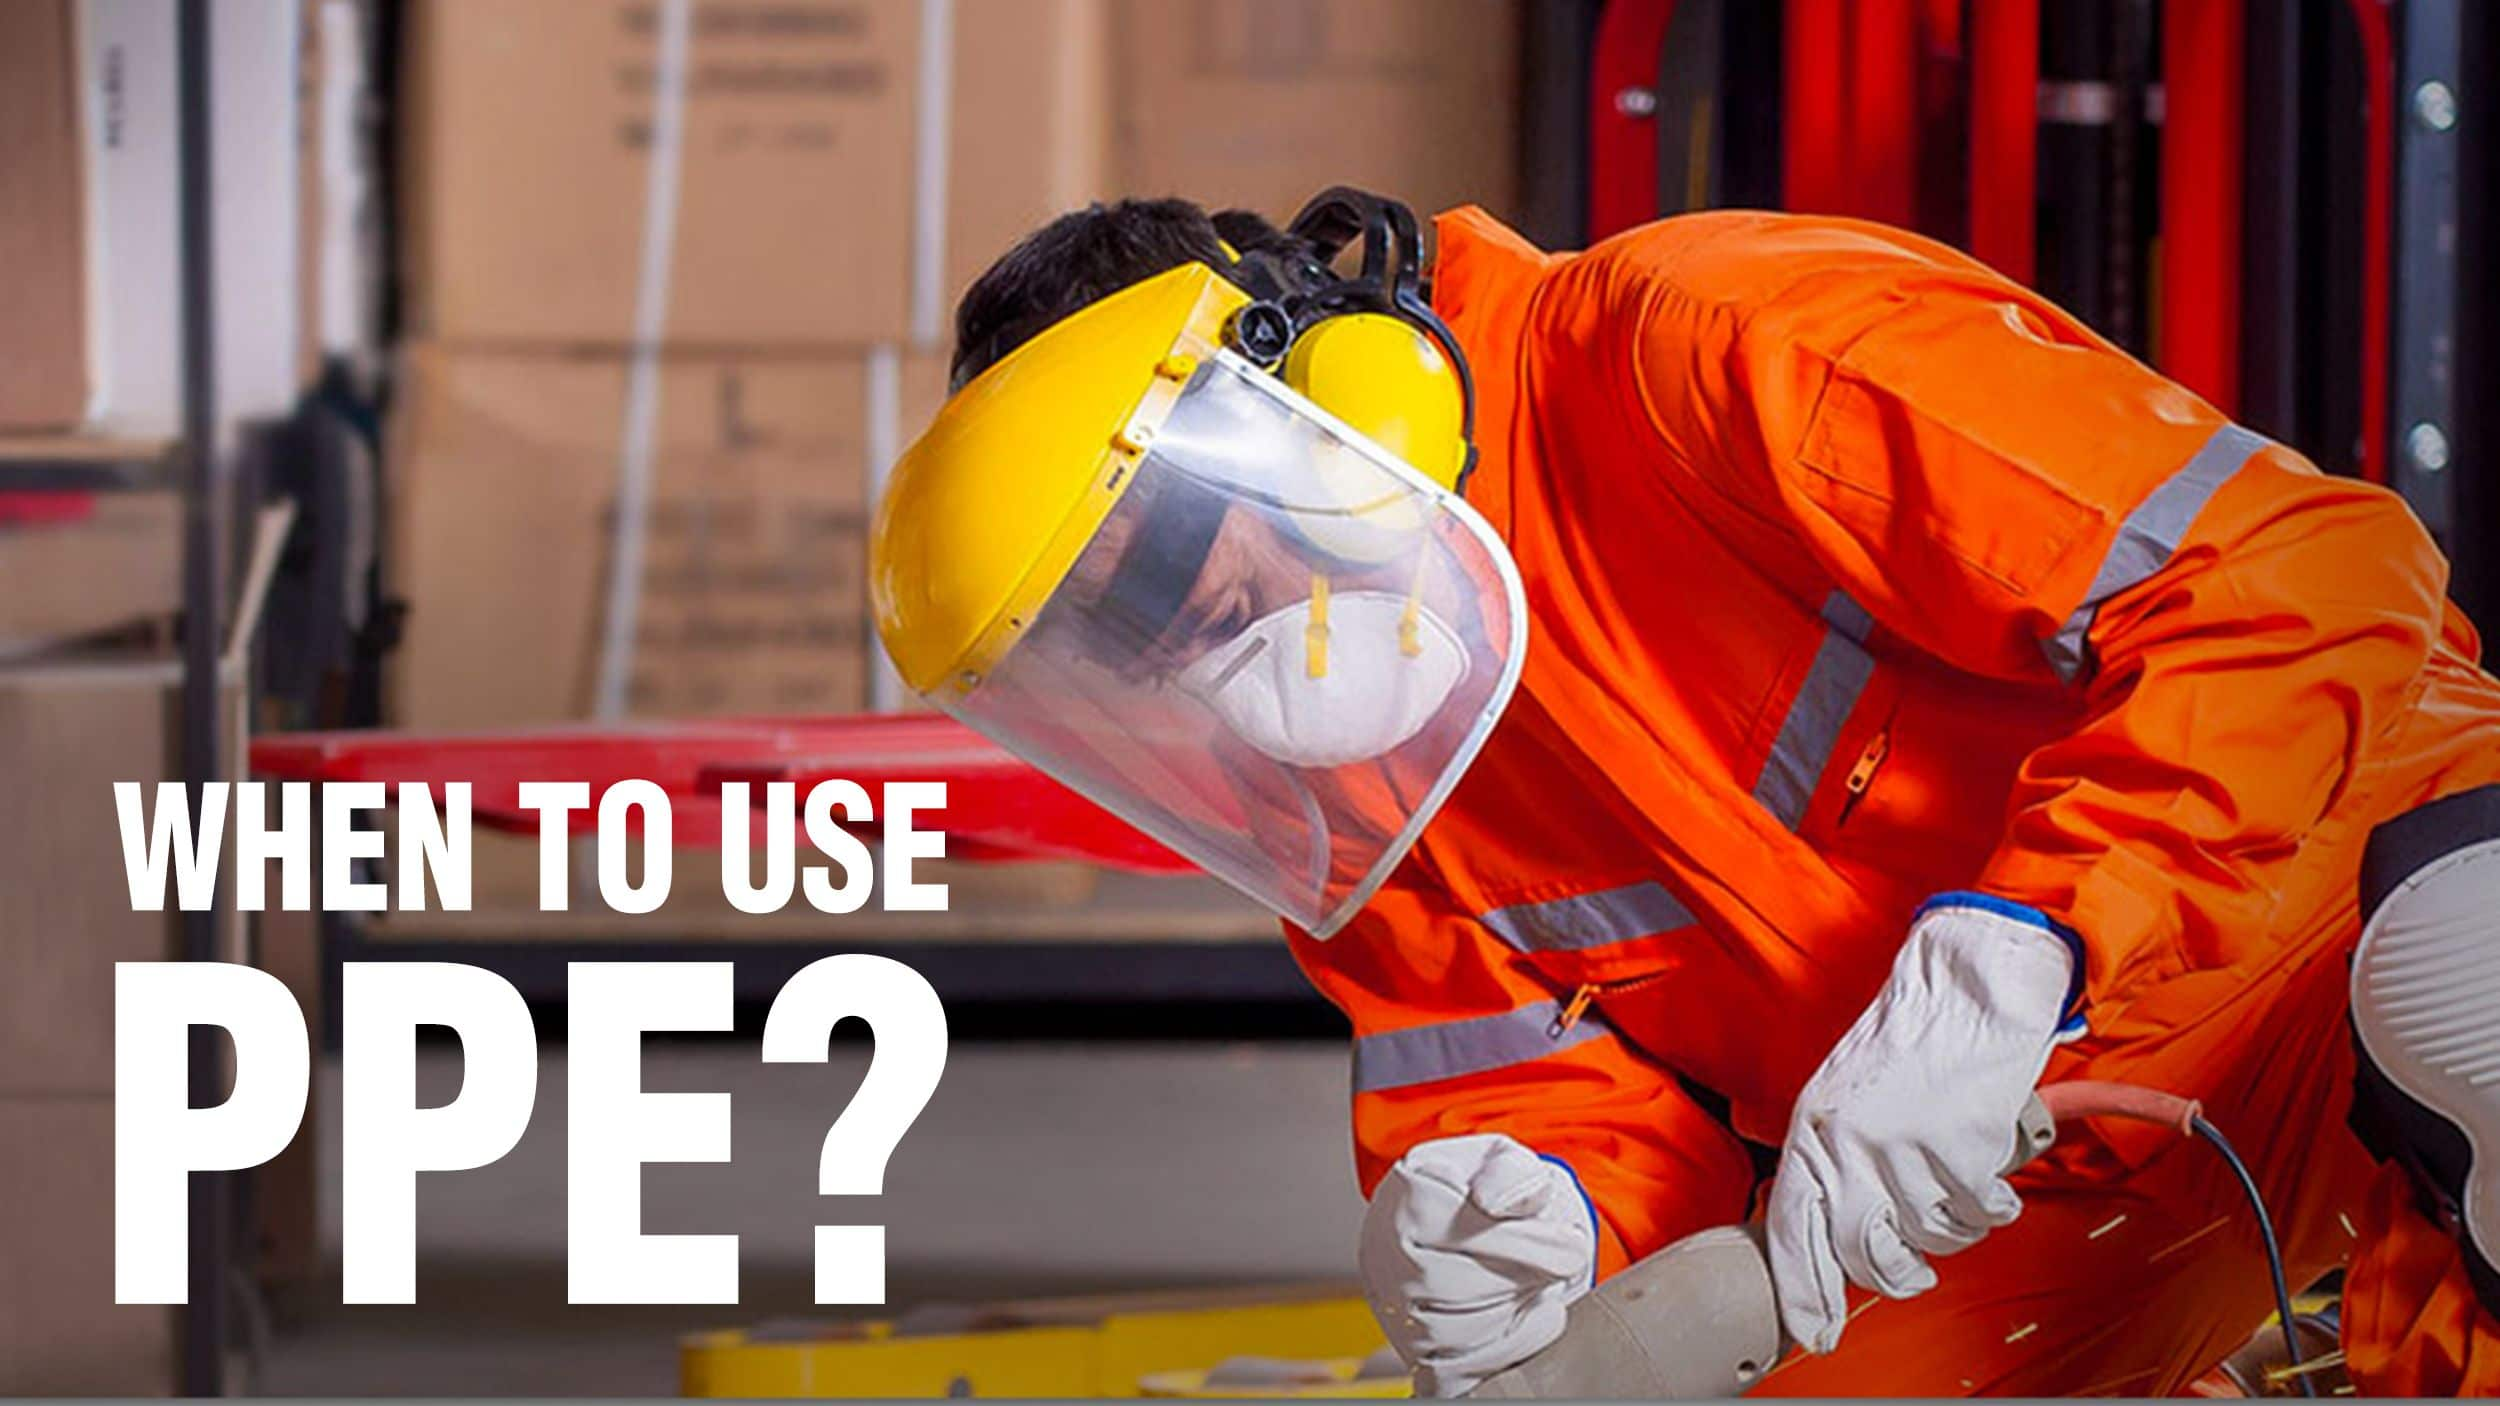 When to Use PPE Header